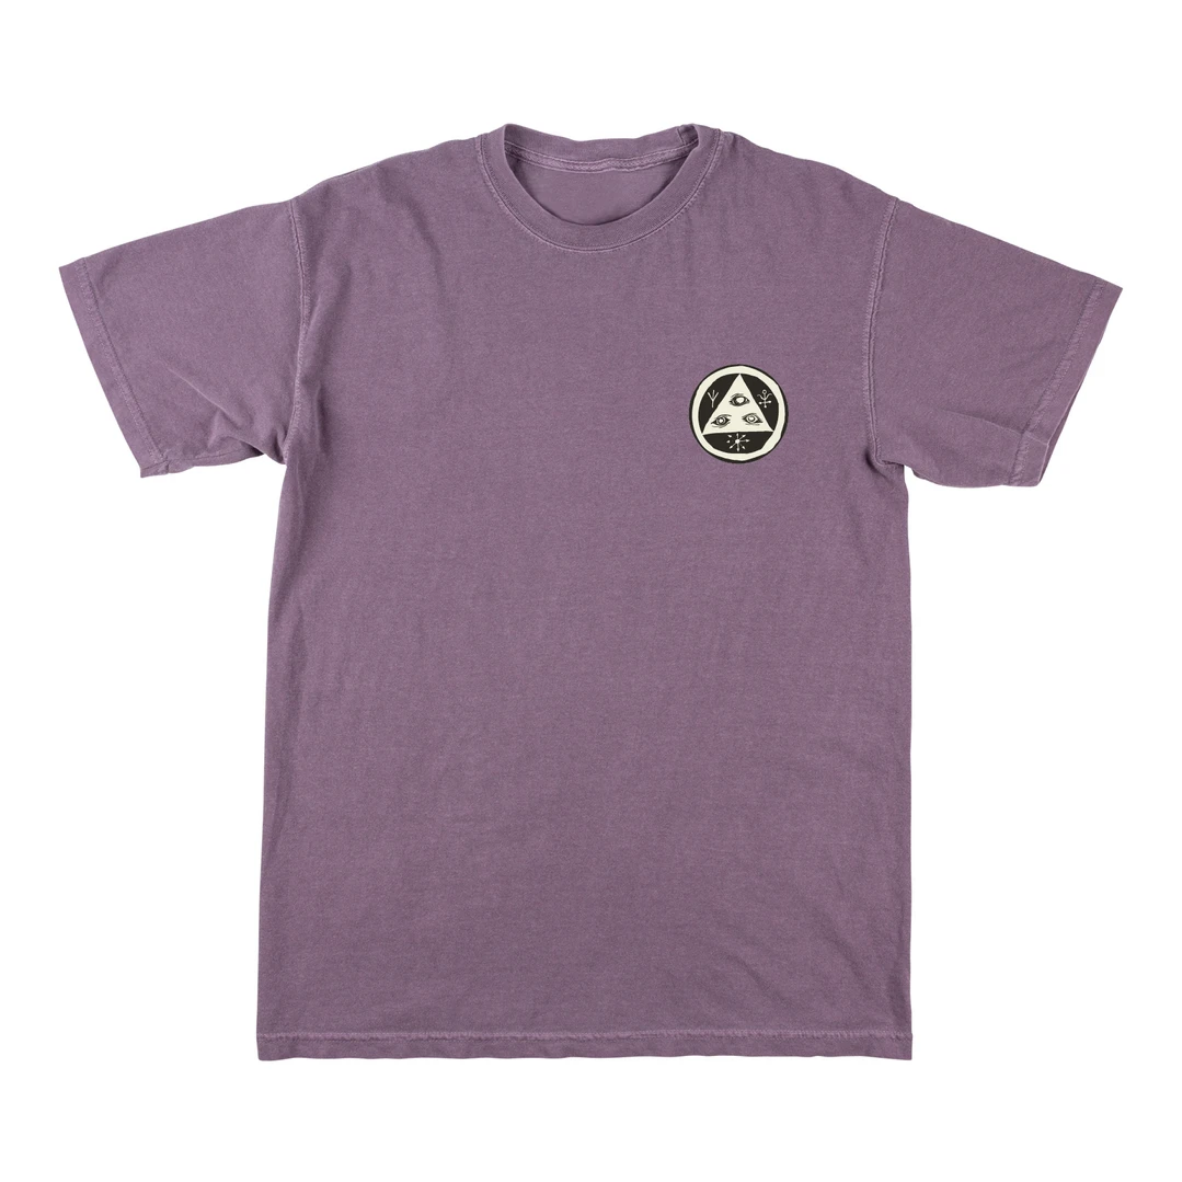 Welcome Skateboards Sloth Garment-Dyed Tee Wine